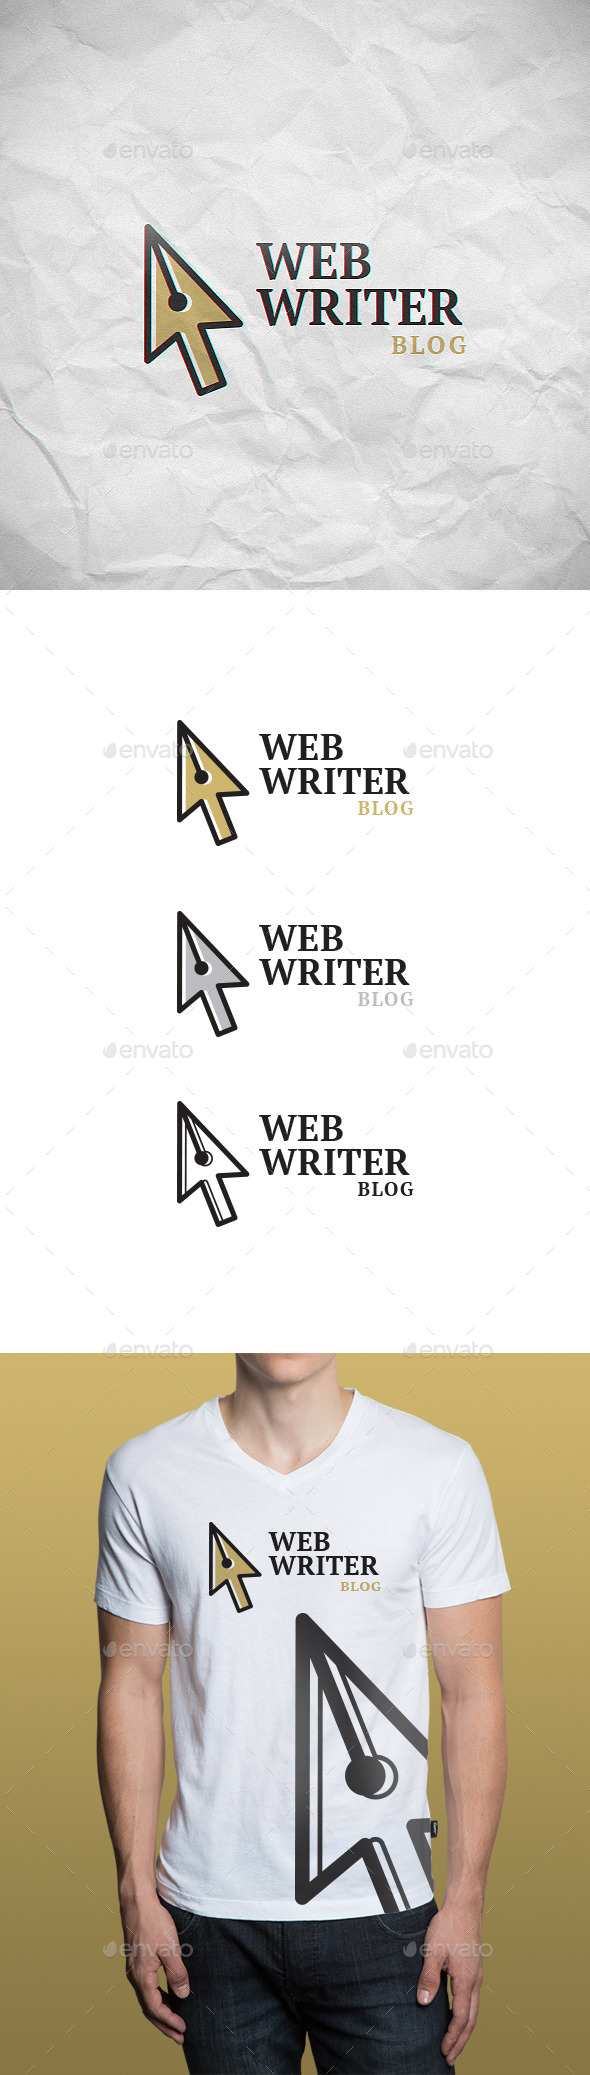 Web Writer Logo Template - Objects Logo Templates